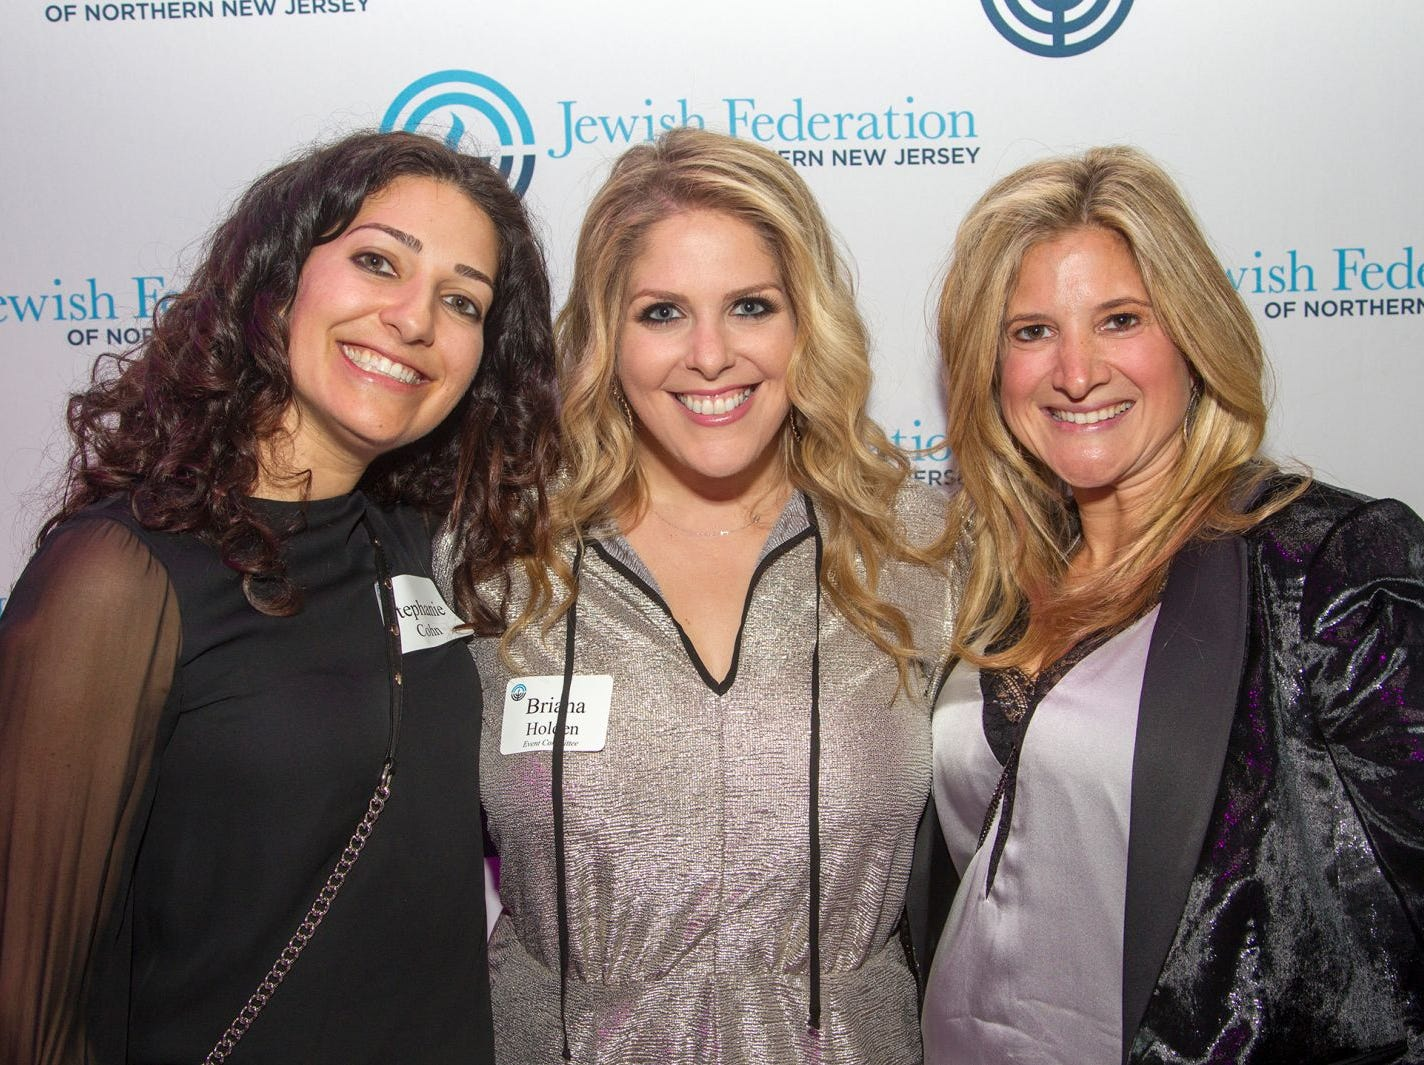 Stephanie Cohn, Briana Holden, Jillian Sorberg. Jewish Federation of Northern New Jersey held its first Girl's Night Out dance party at Space in Englewood. 01/24/2019